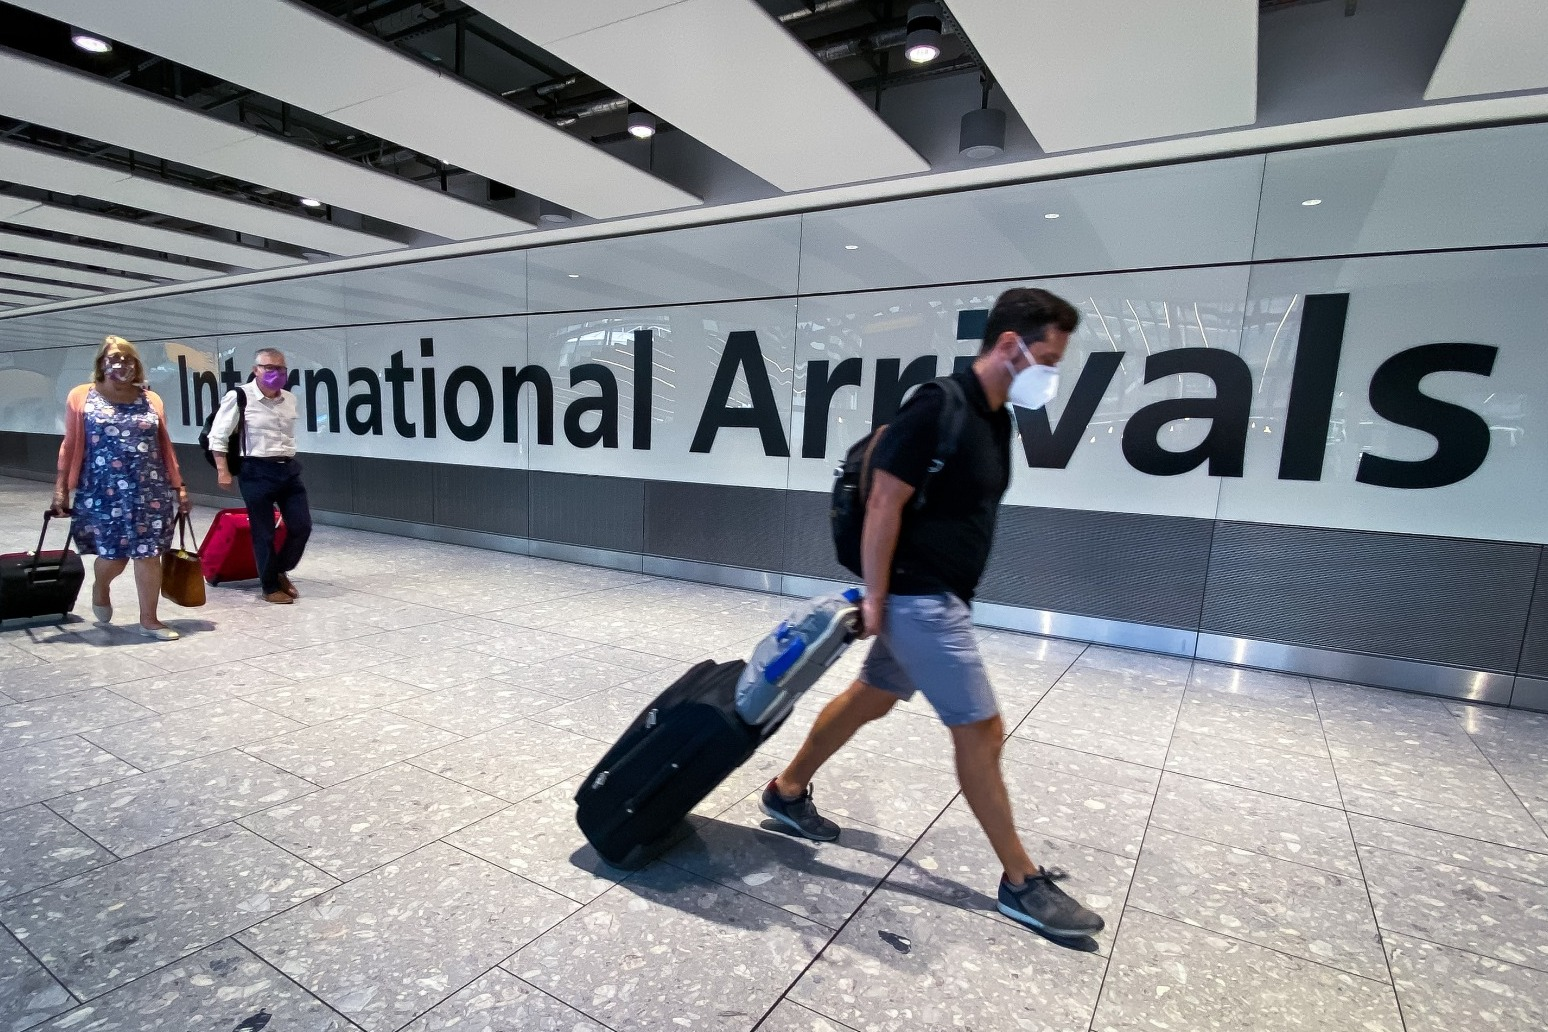 Airports fear losing £2.6bn in 2021 due to 'overly cautious' travel rules